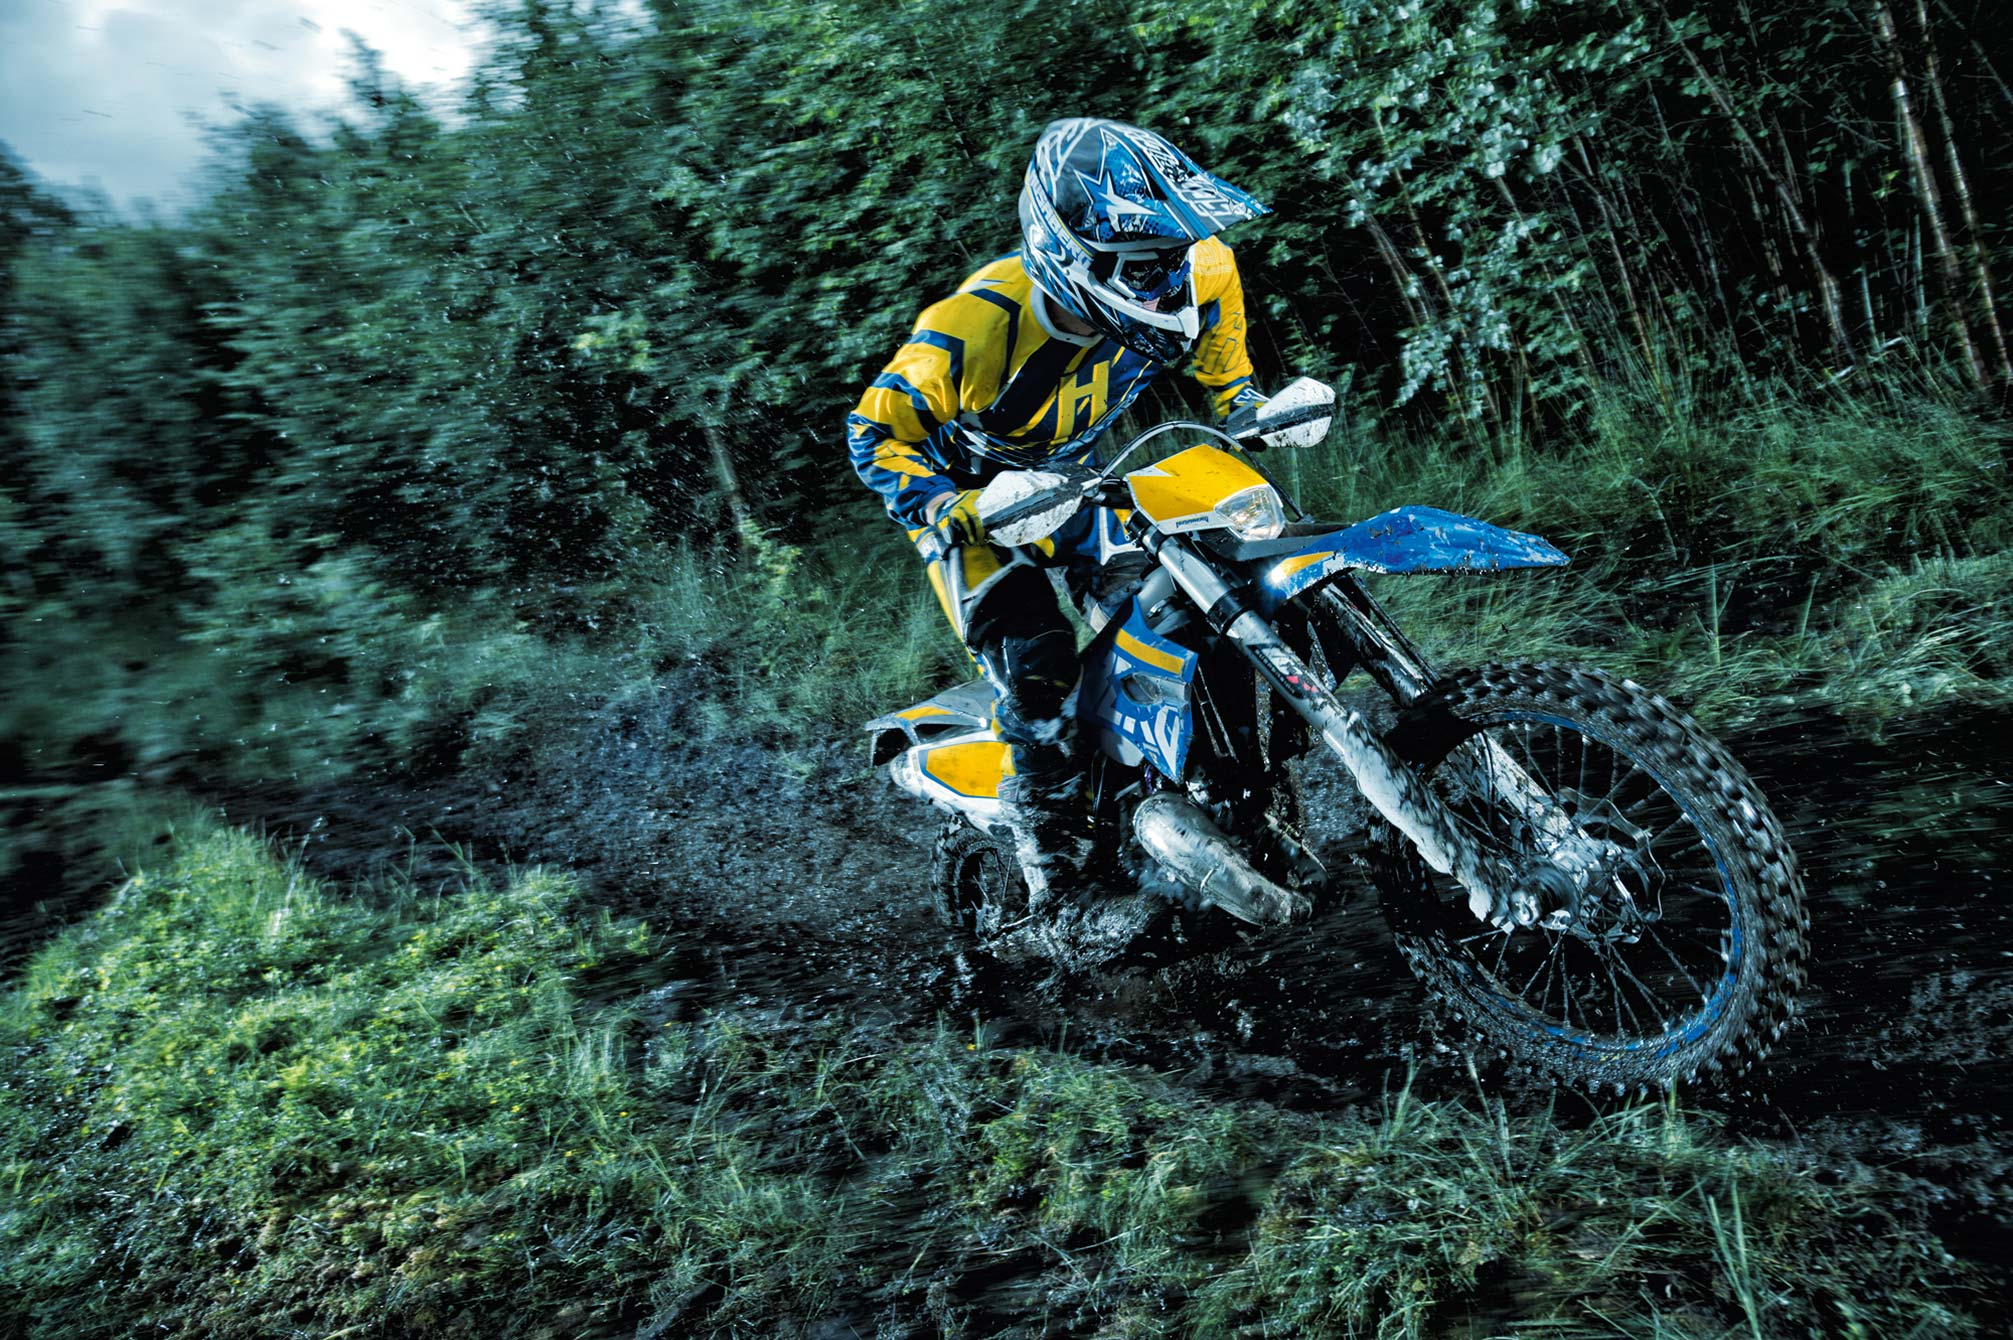 HD Dirt Bike Wallpapers and Photos | HD Bikes Wallpapers